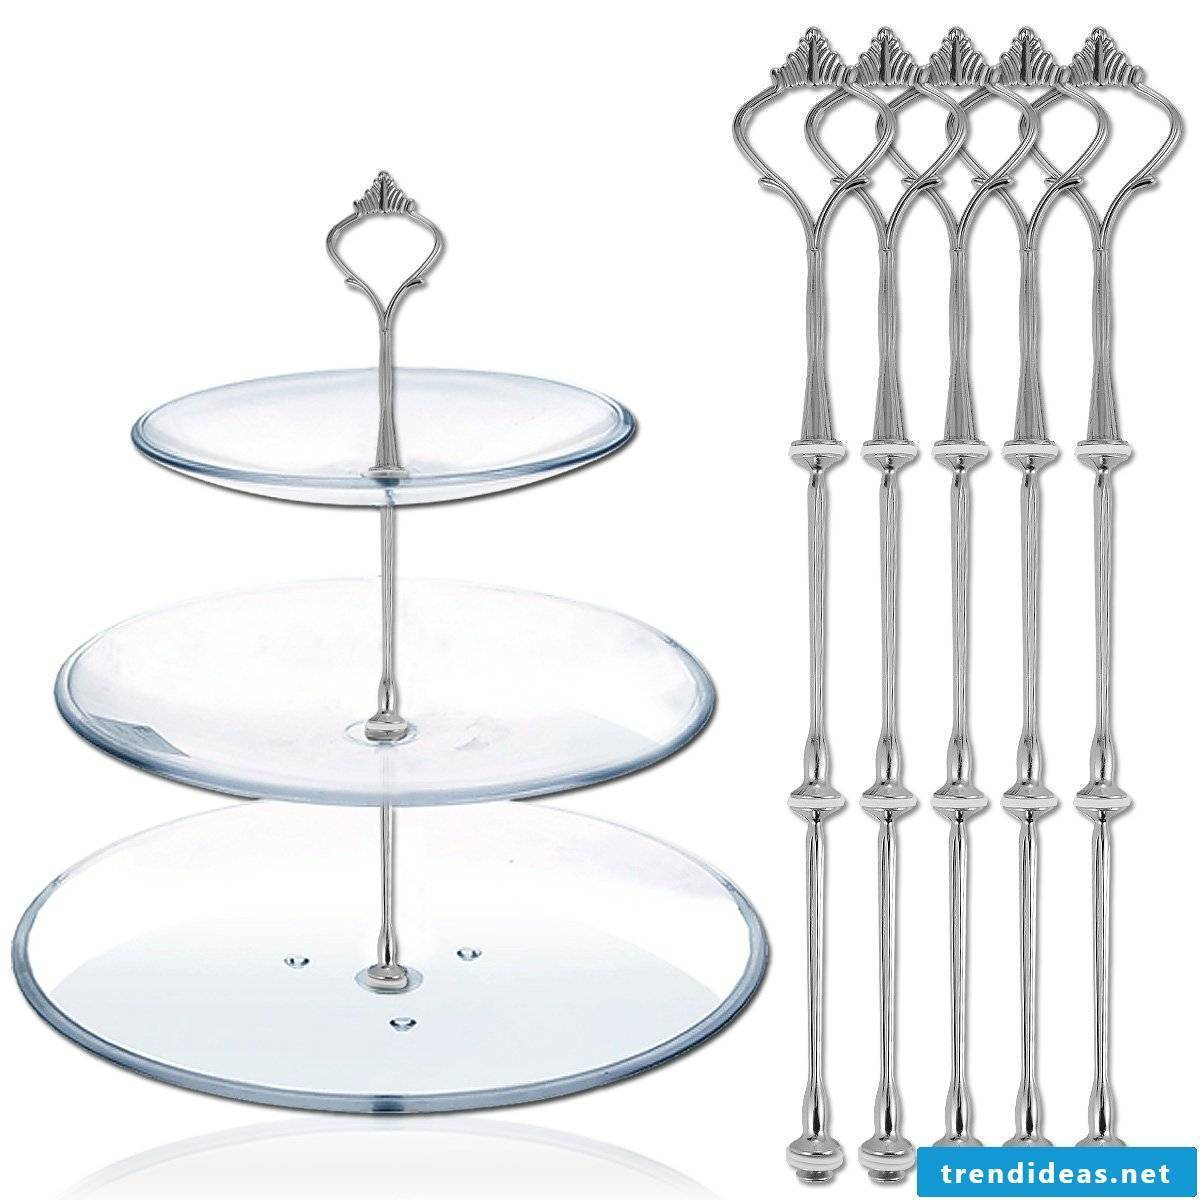 Etagere made of glass